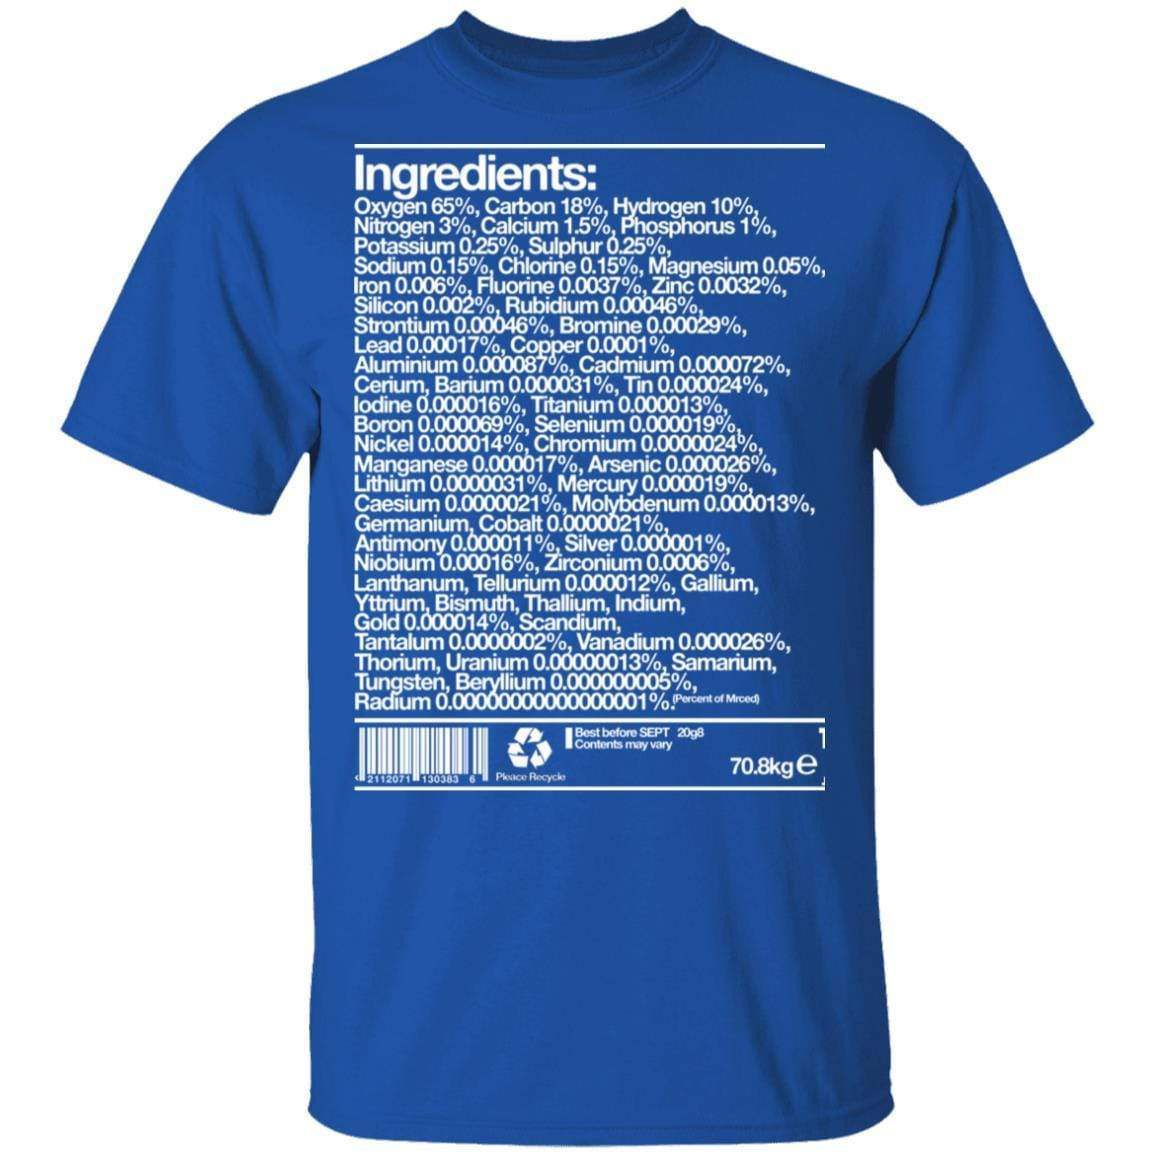 Human Ingredients Oxygen 65% Carbon 18% Hydrogen 10% T-Shirts, Hoodies 1049-9971-87589185-48286 - Tee Ript